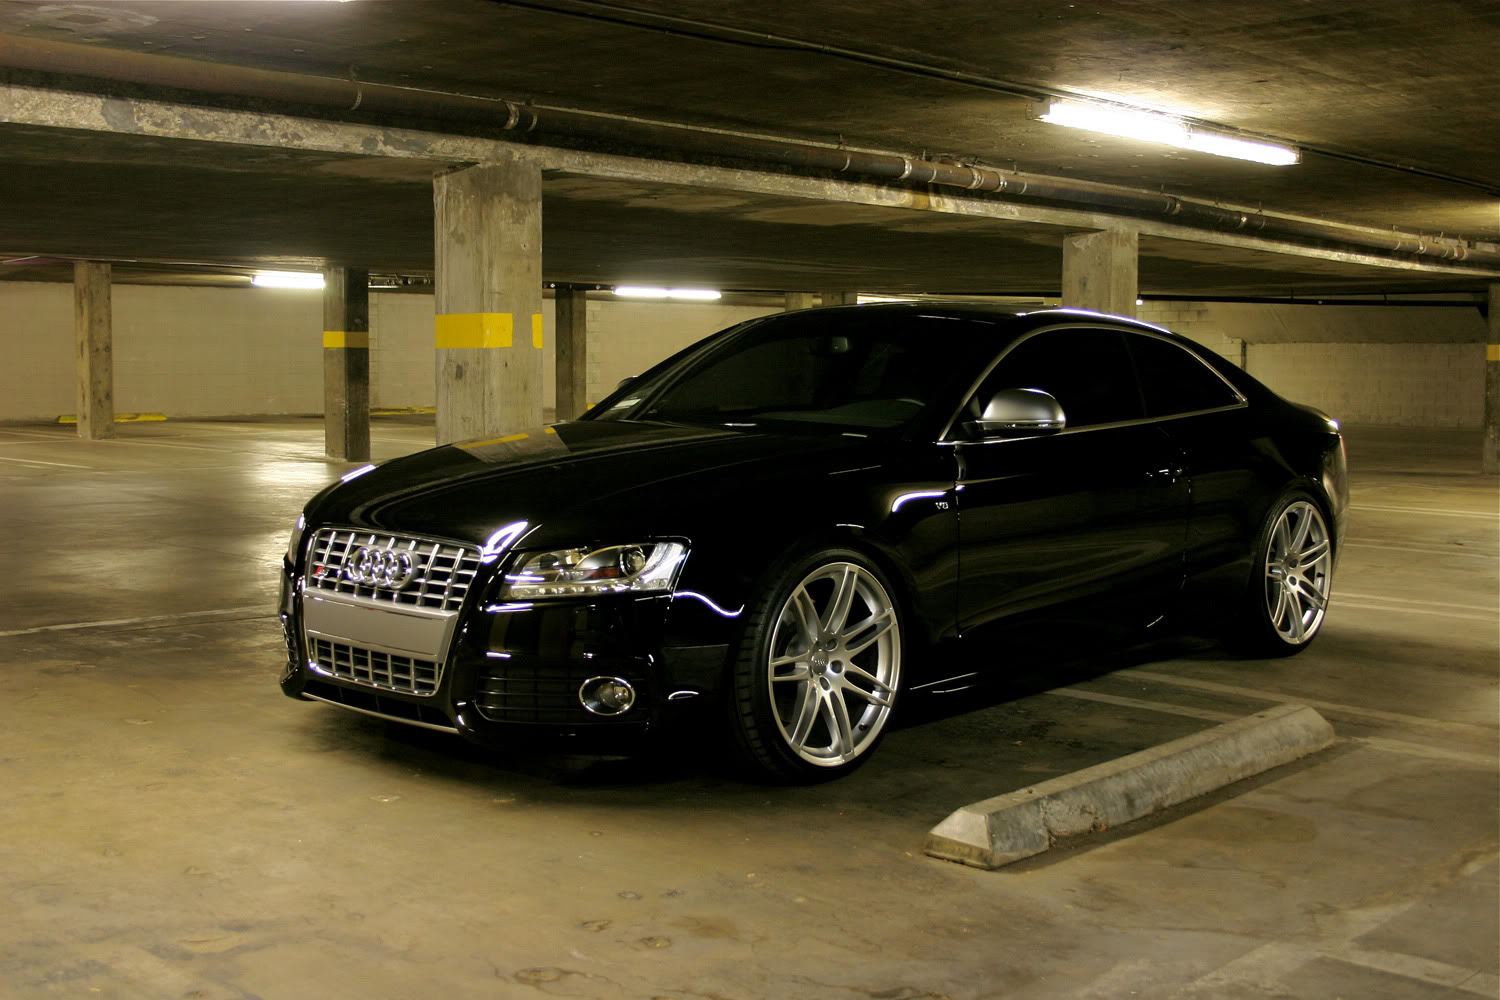 audi s5 2004 review amazing pictures and images look. Black Bedroom Furniture Sets. Home Design Ideas